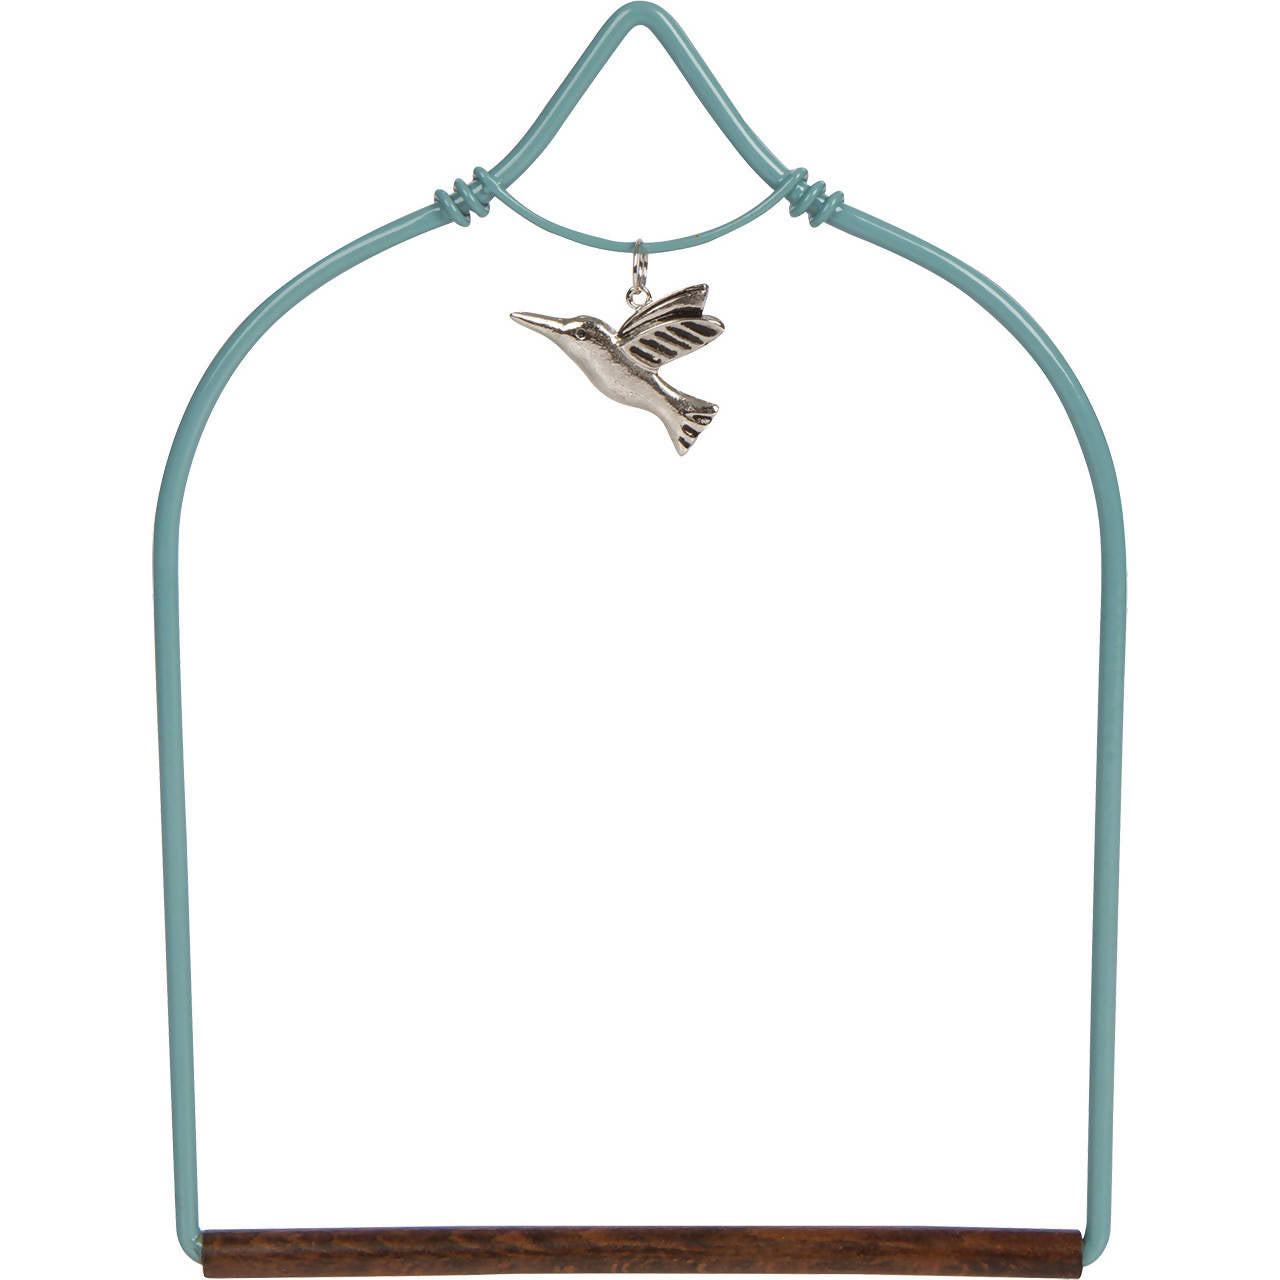 Pops Hummingbird Swing - Charmed Teal